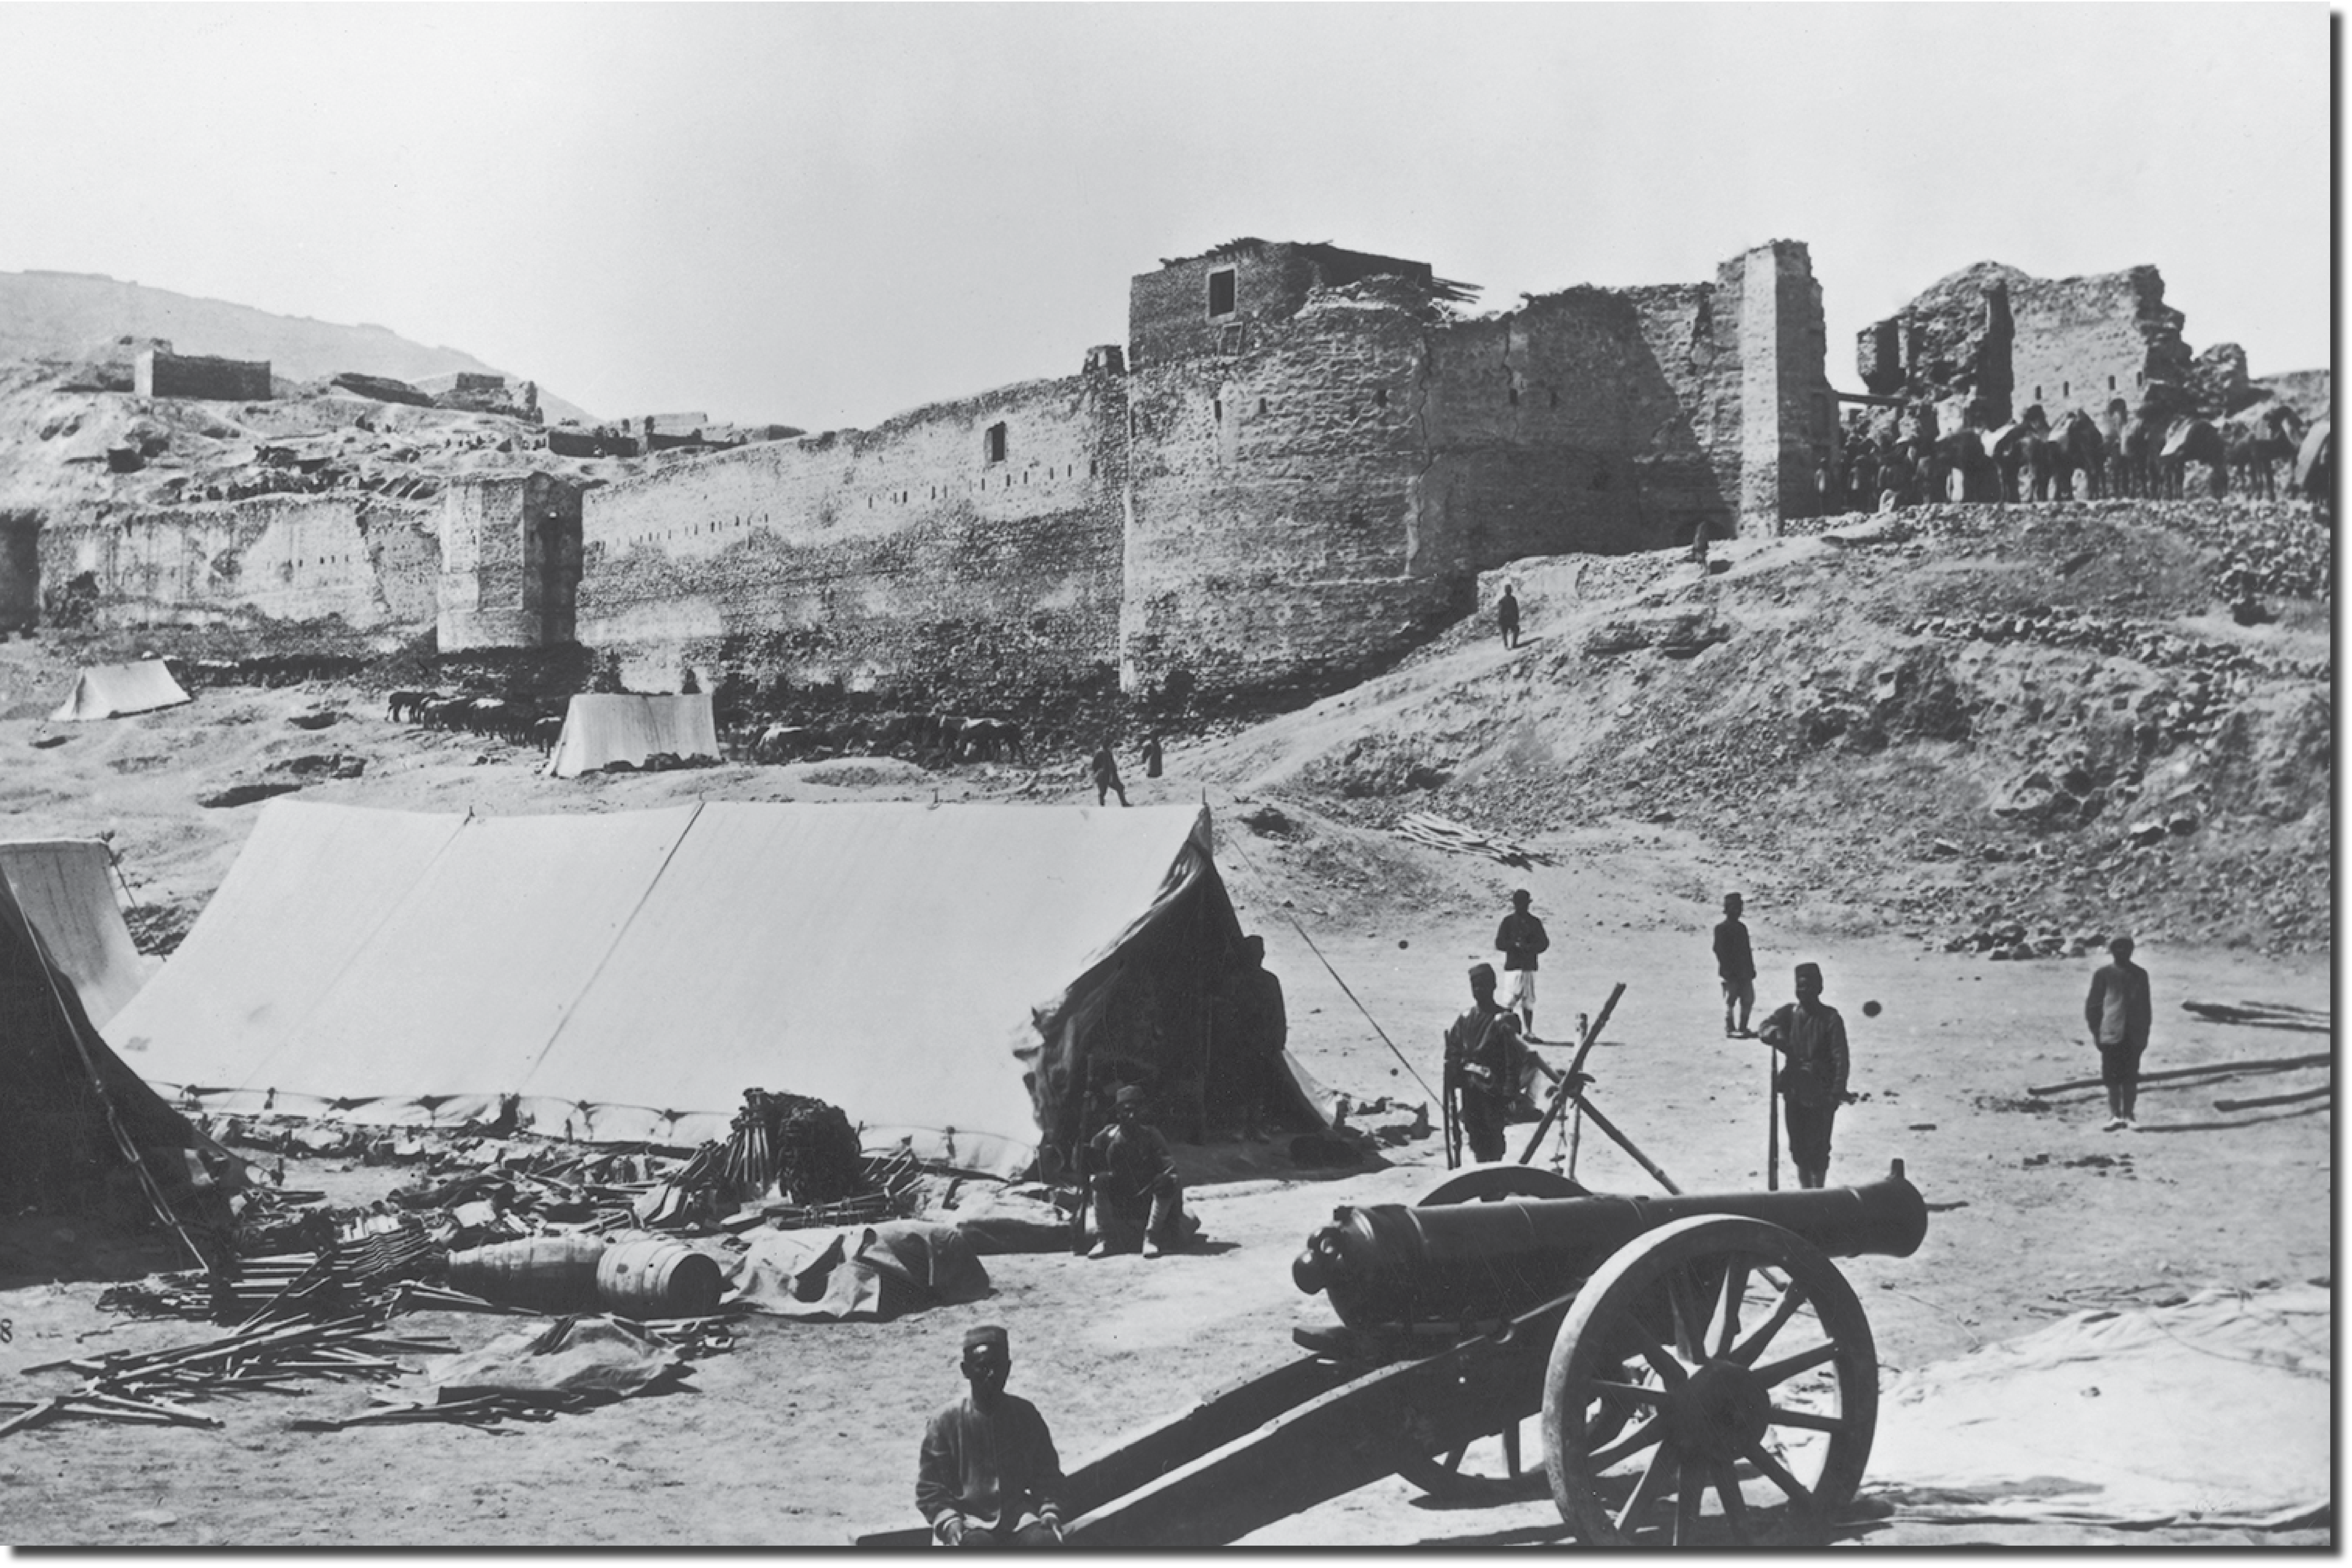 The upper part of the Bala Hissar in 1879.